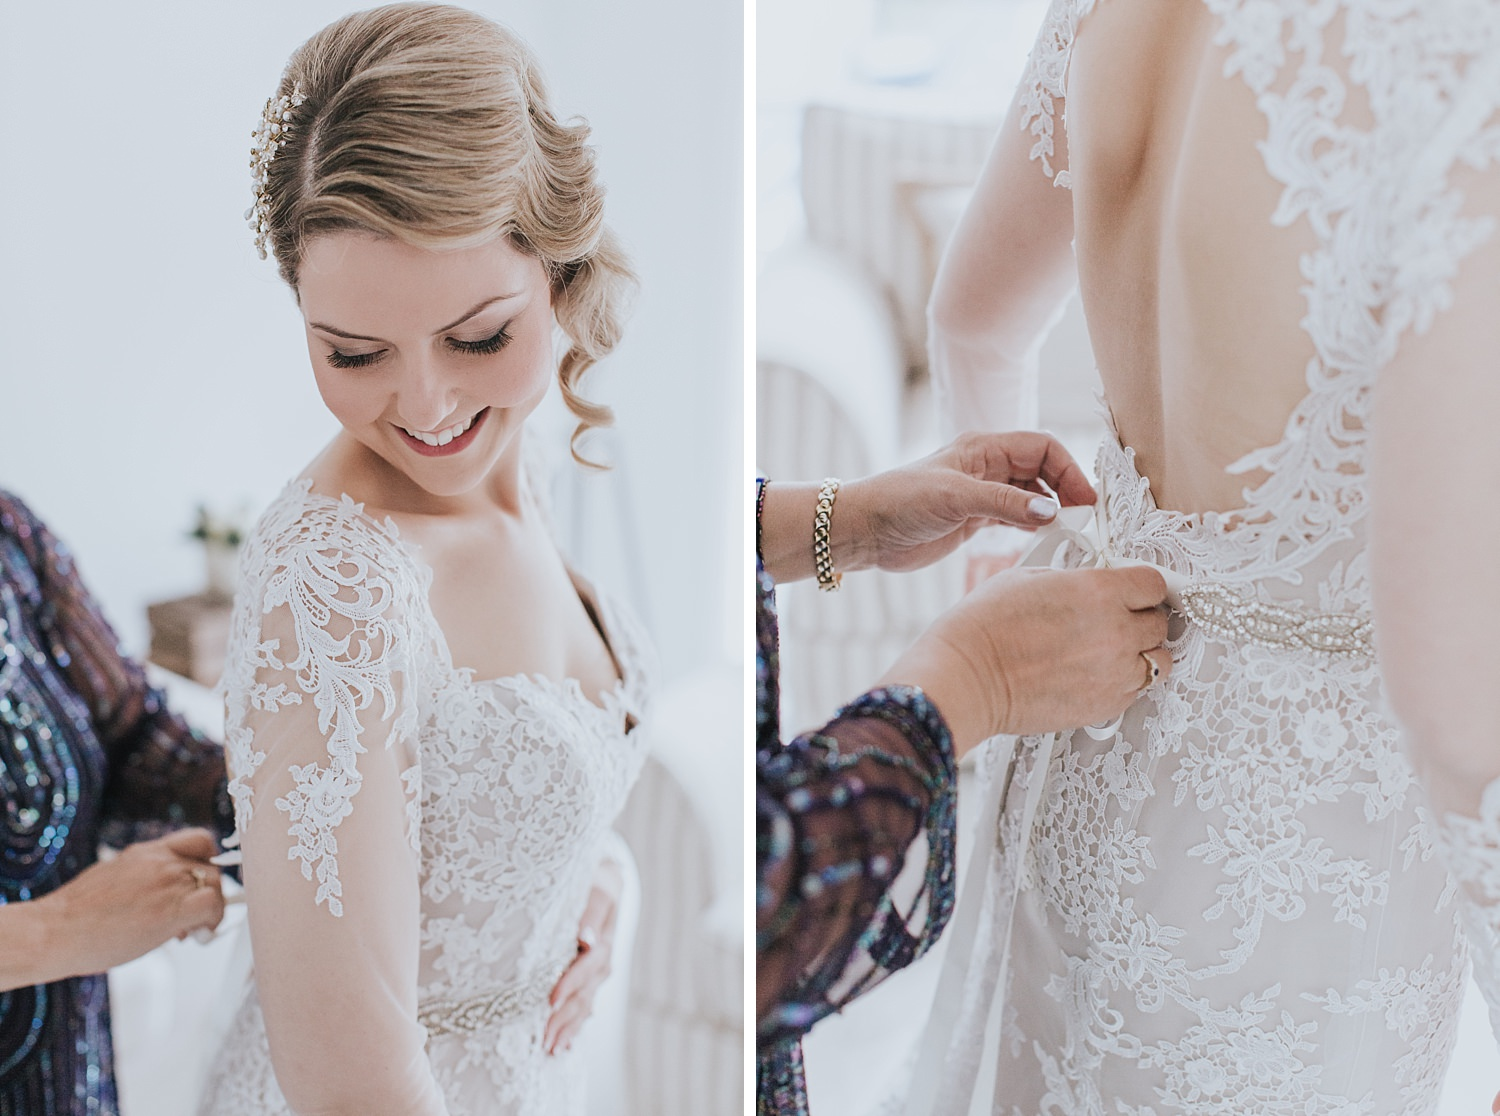 beautiful rustic bride details with lace gown